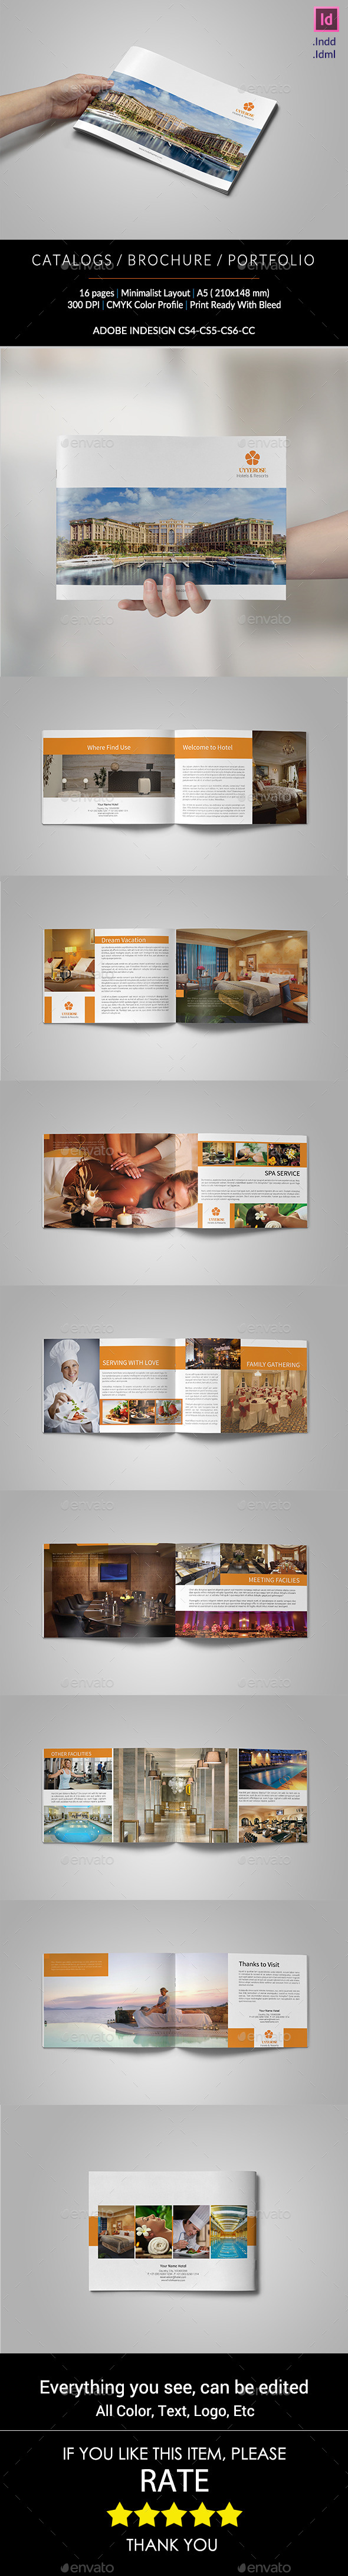 Hotel Brochure A5 | Hotel brochure, Brochure template and Brochures